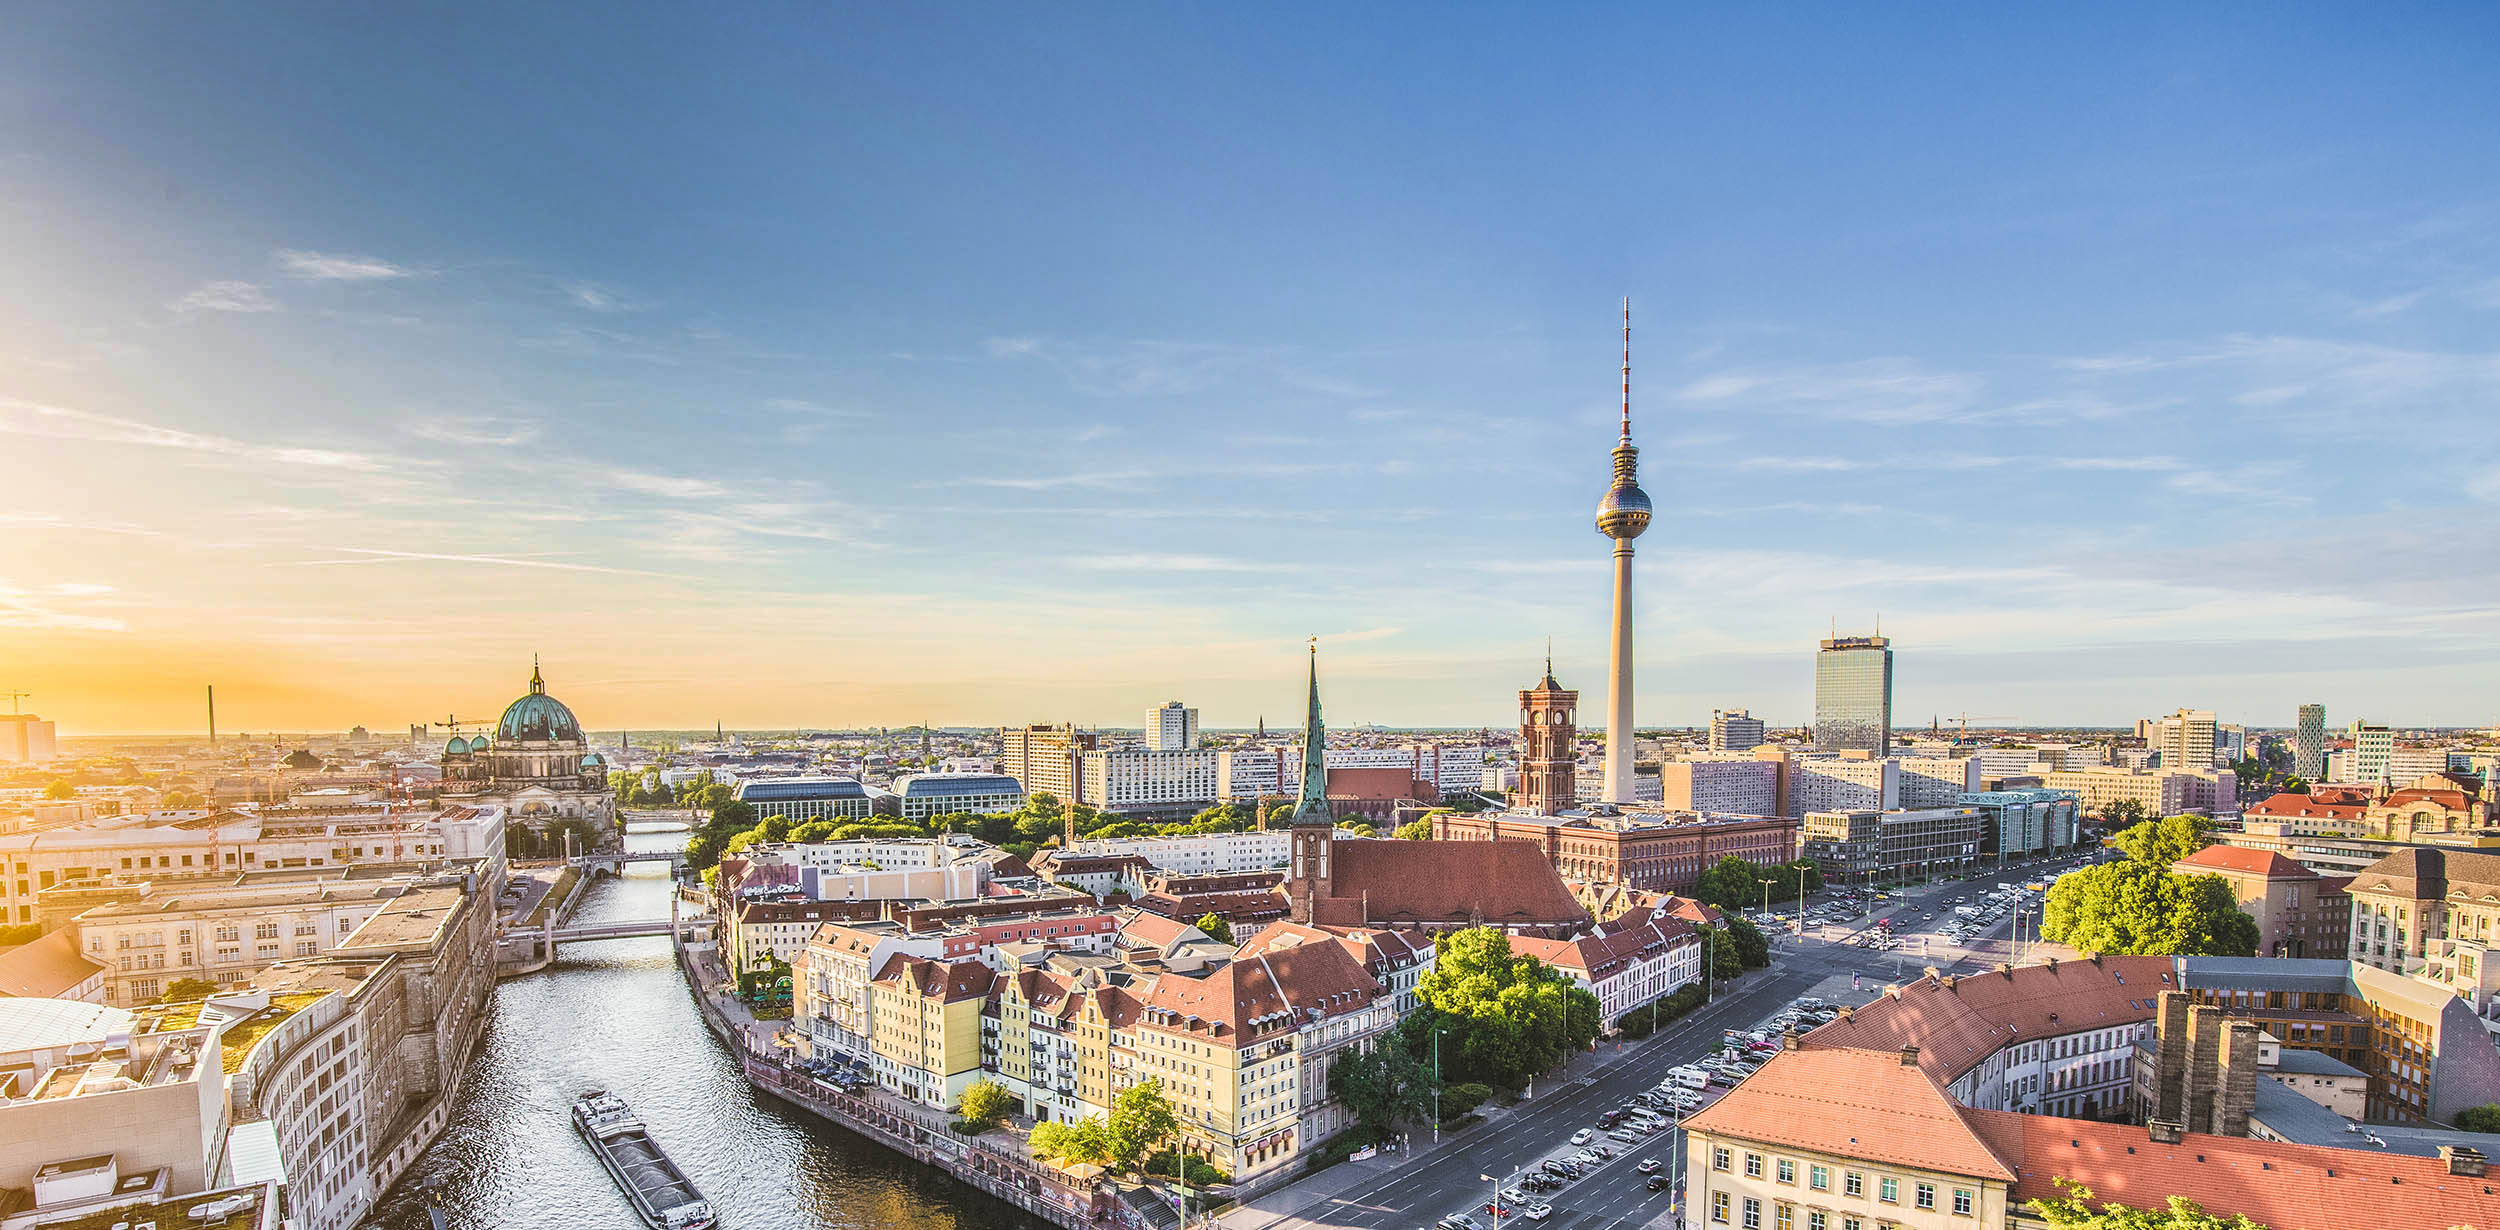 Gilingo - Berlin skyline with Spree river at sunset, Germany